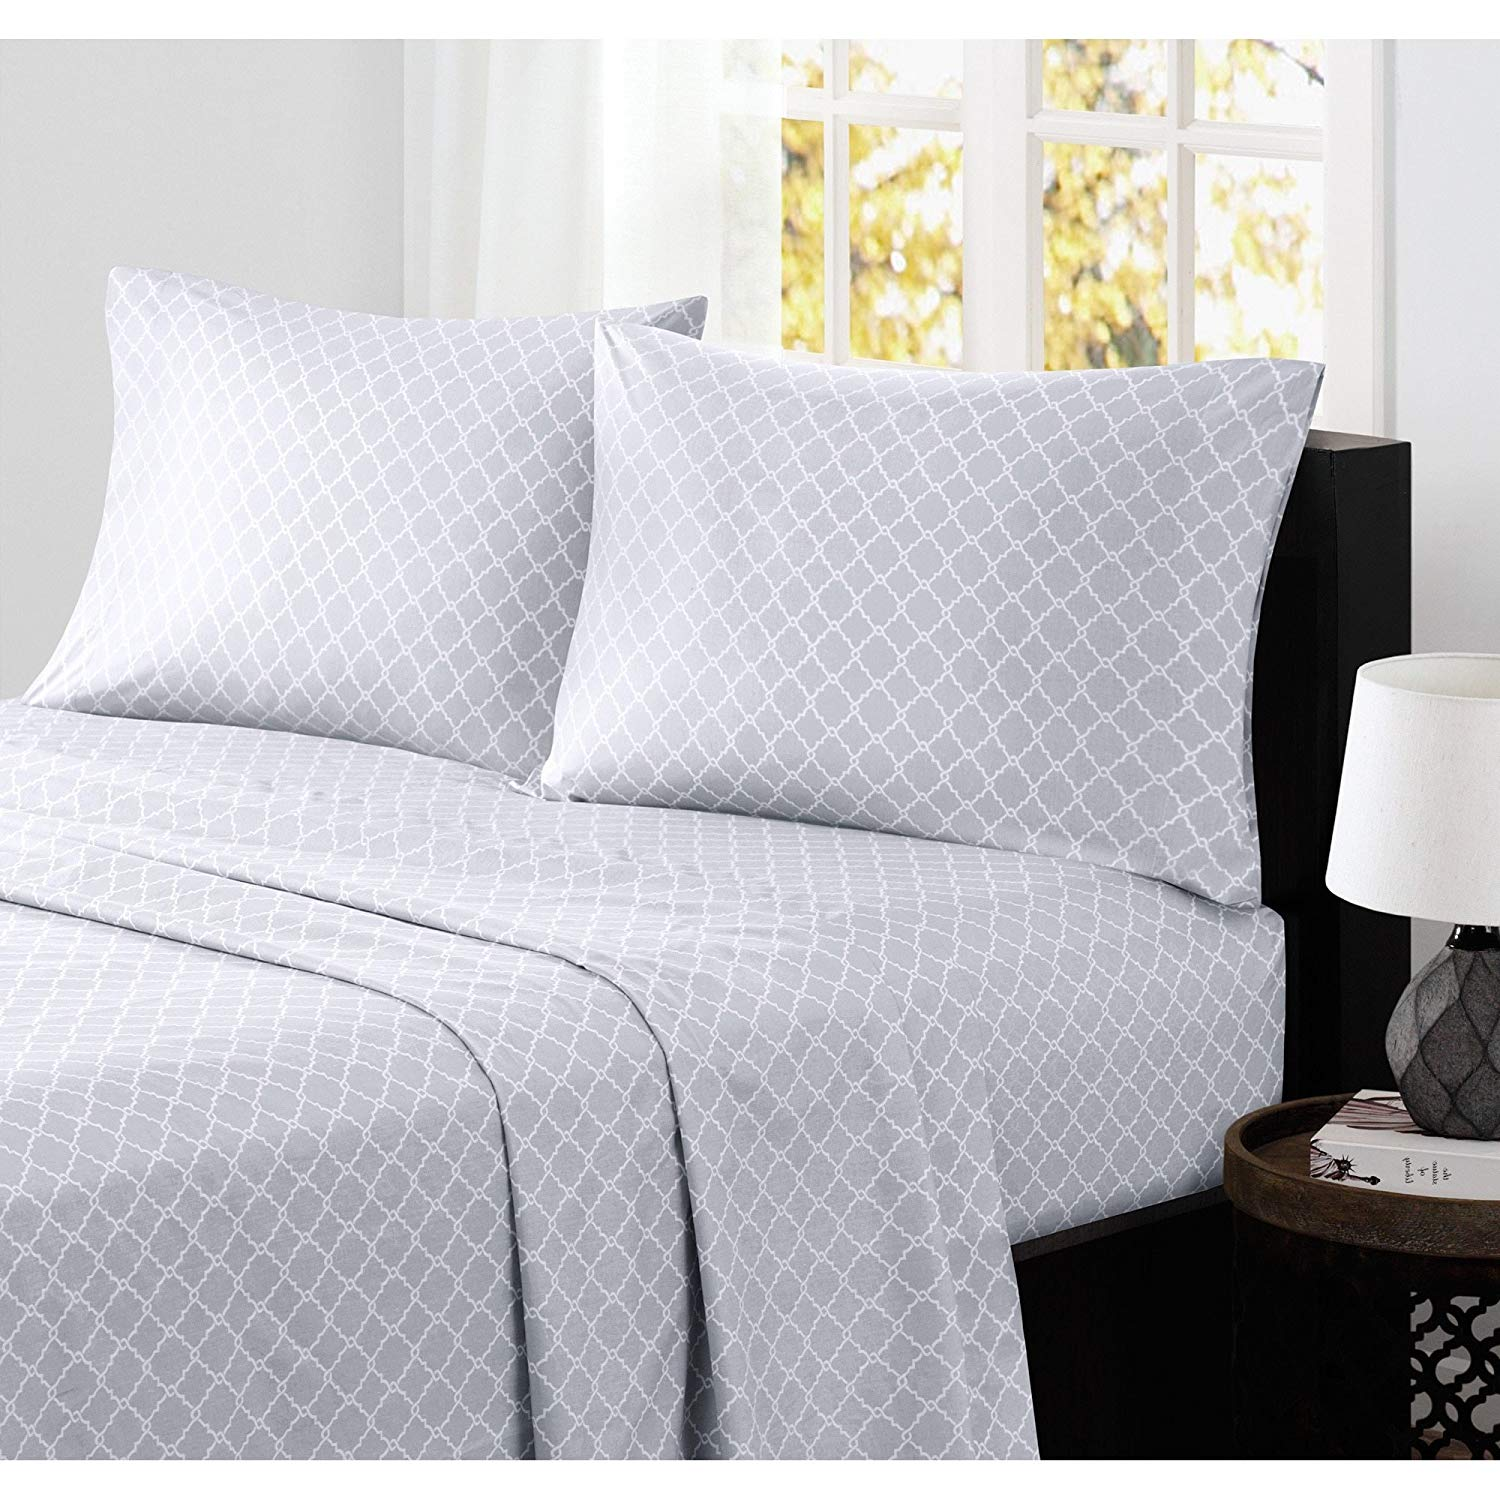 4 Piece Grey White Geometric Fretwork Pattern Sheets King Set, Luxurious Light Gray Moroccan Trellis Print Bedding Hippie Textured Design, Bright Colors, Casual Style, Deep Pocket, Cotton, for Unisex